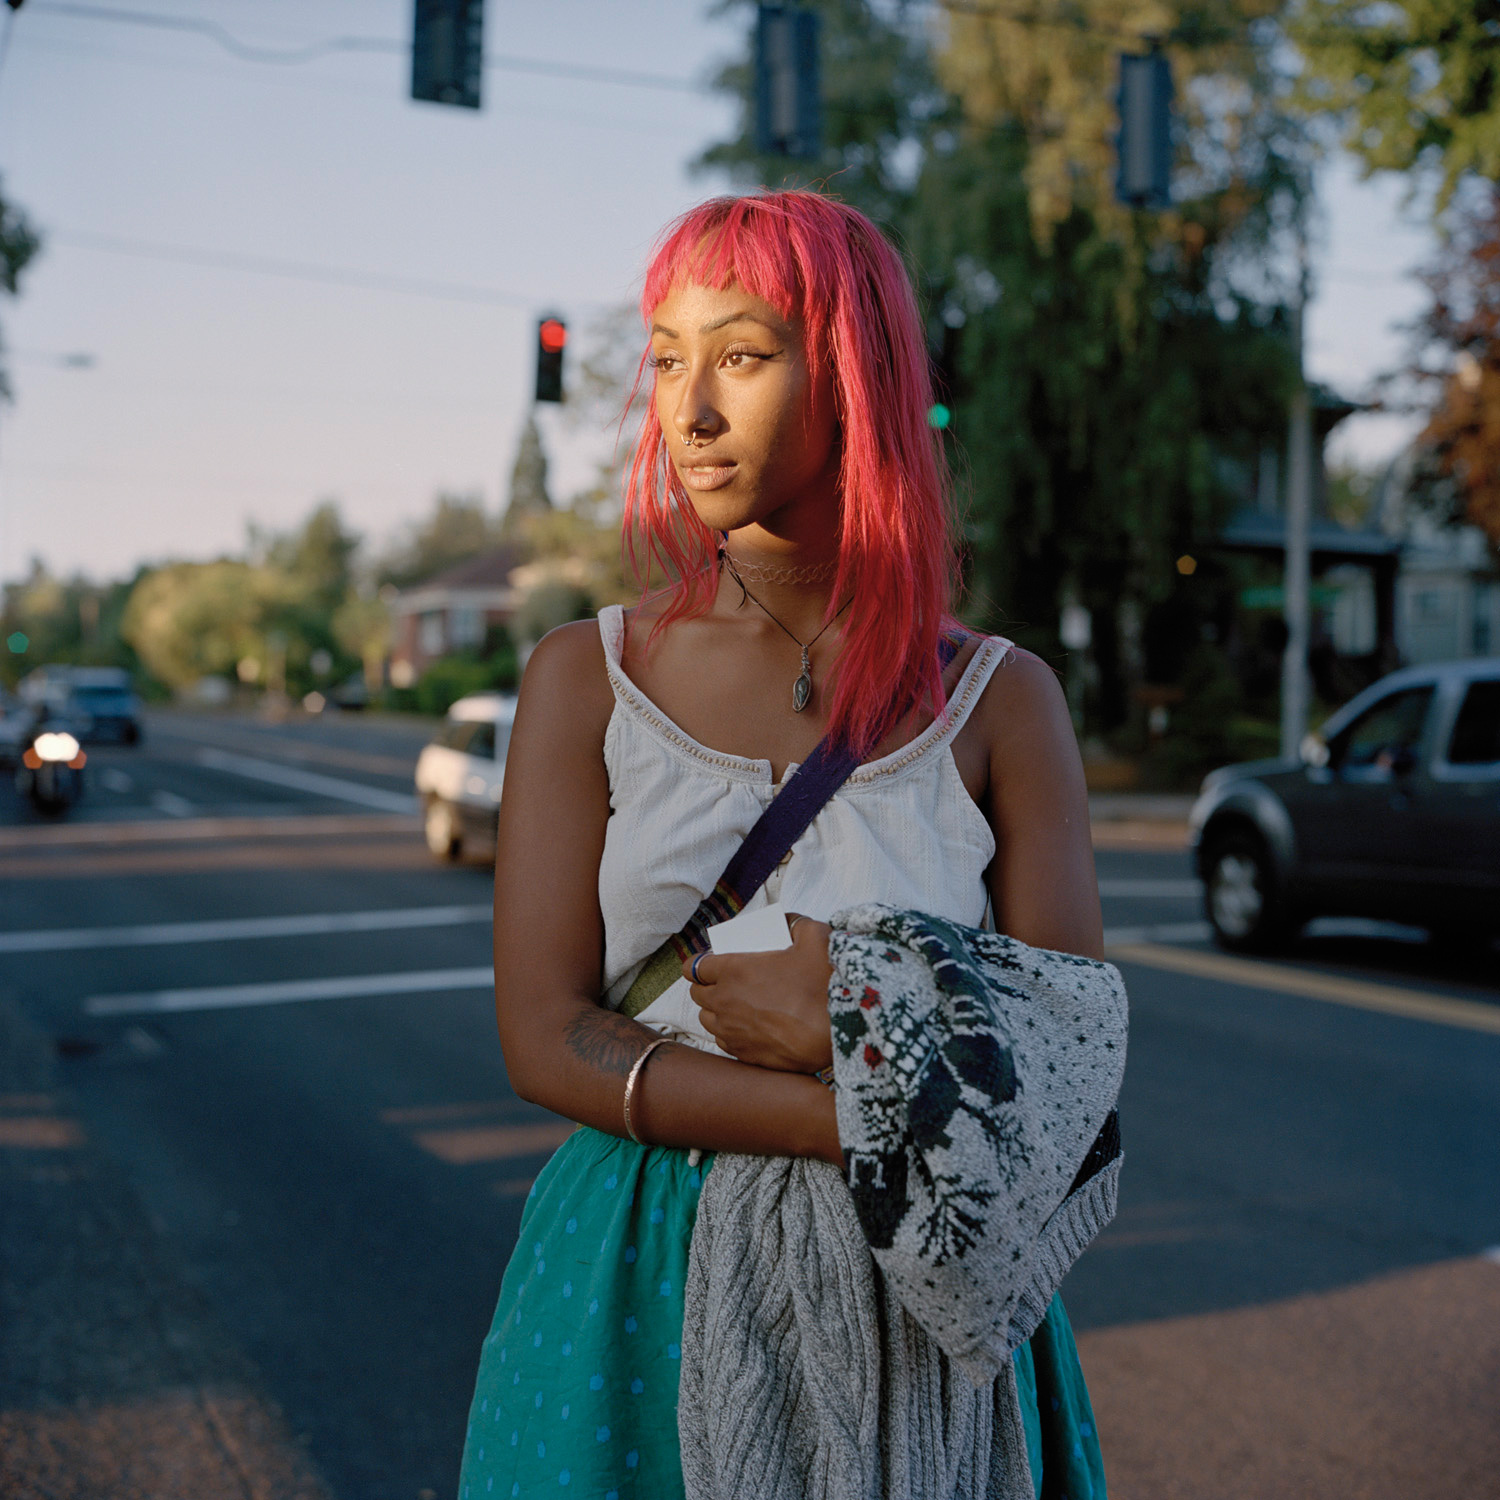 women with bright pink hair, carrying a cardigan starin off to the left. Behind her is a traffic stop light